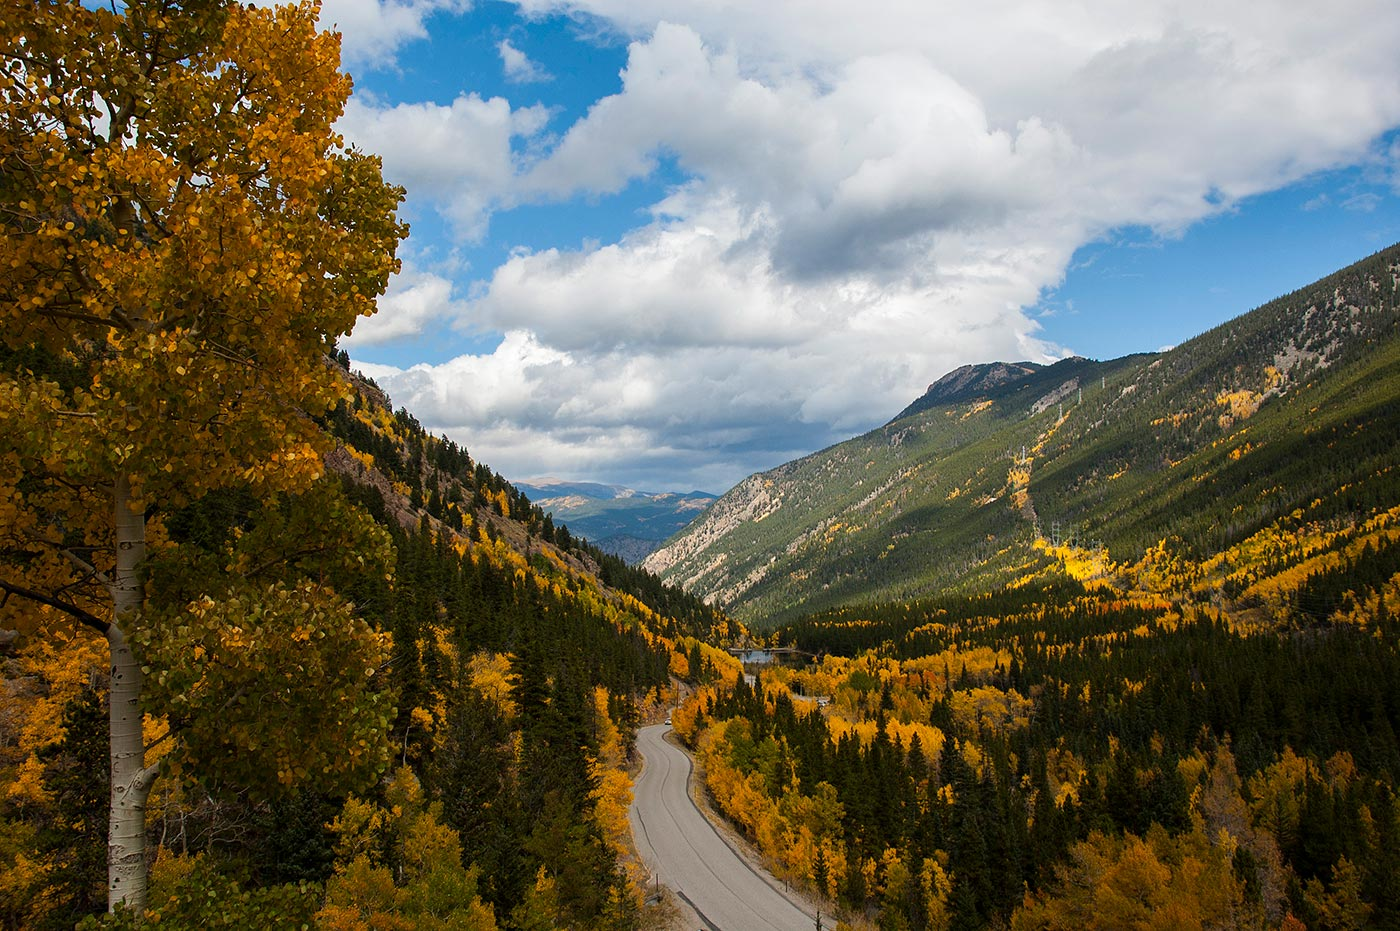 view of guanella pass and the vibrant yellow aspen leaves surrounding the road